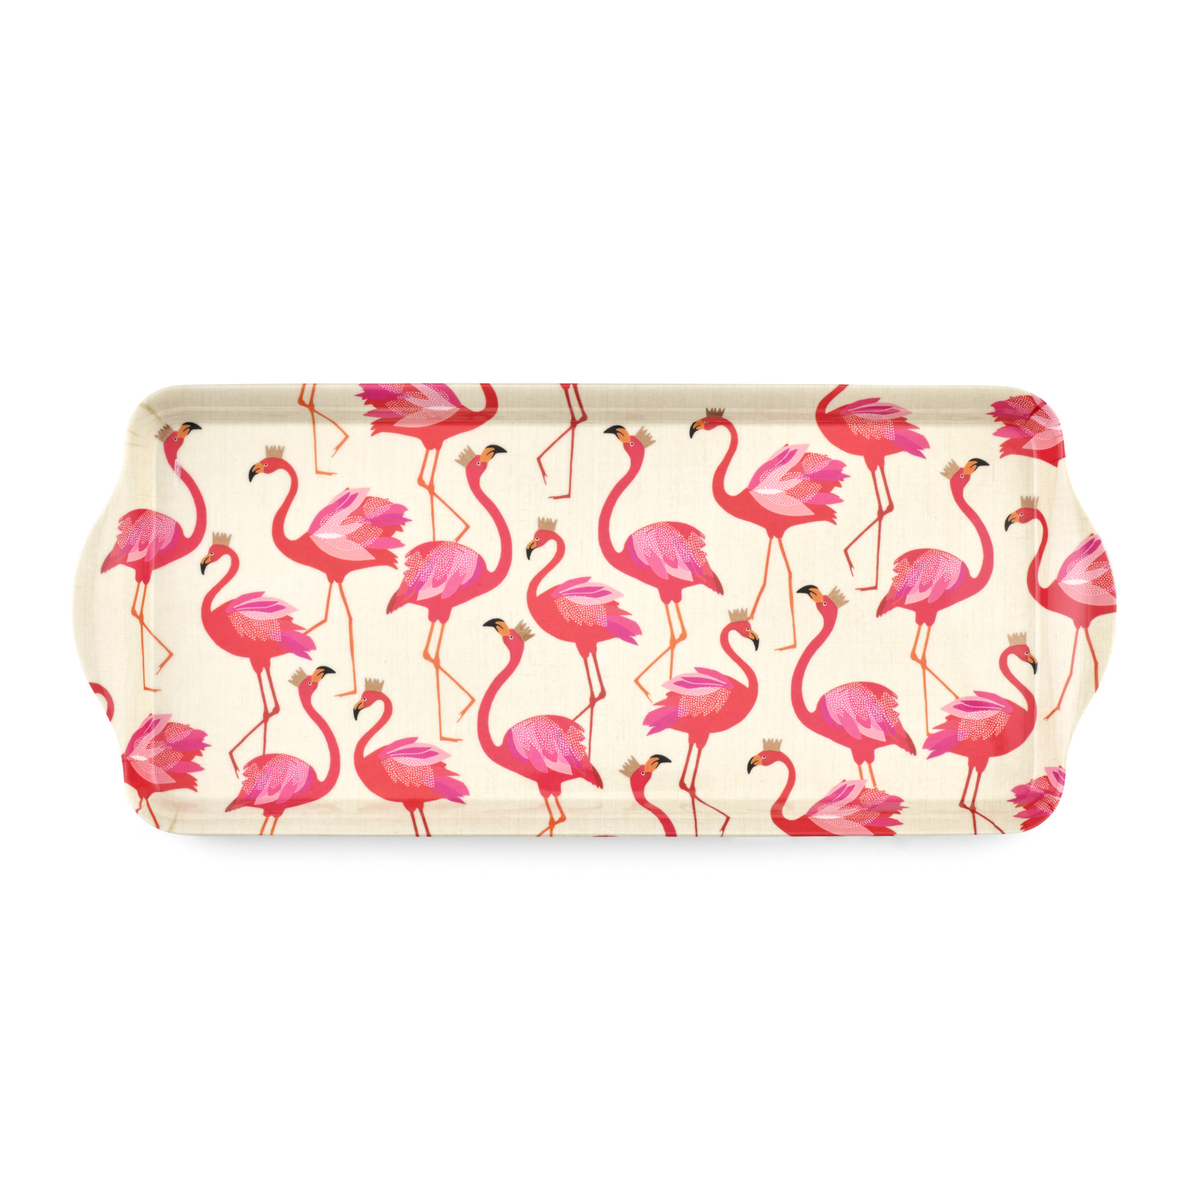 Sara Miller London for Pimpernel Flamingo  Melamine Sandwich Tray image number 0